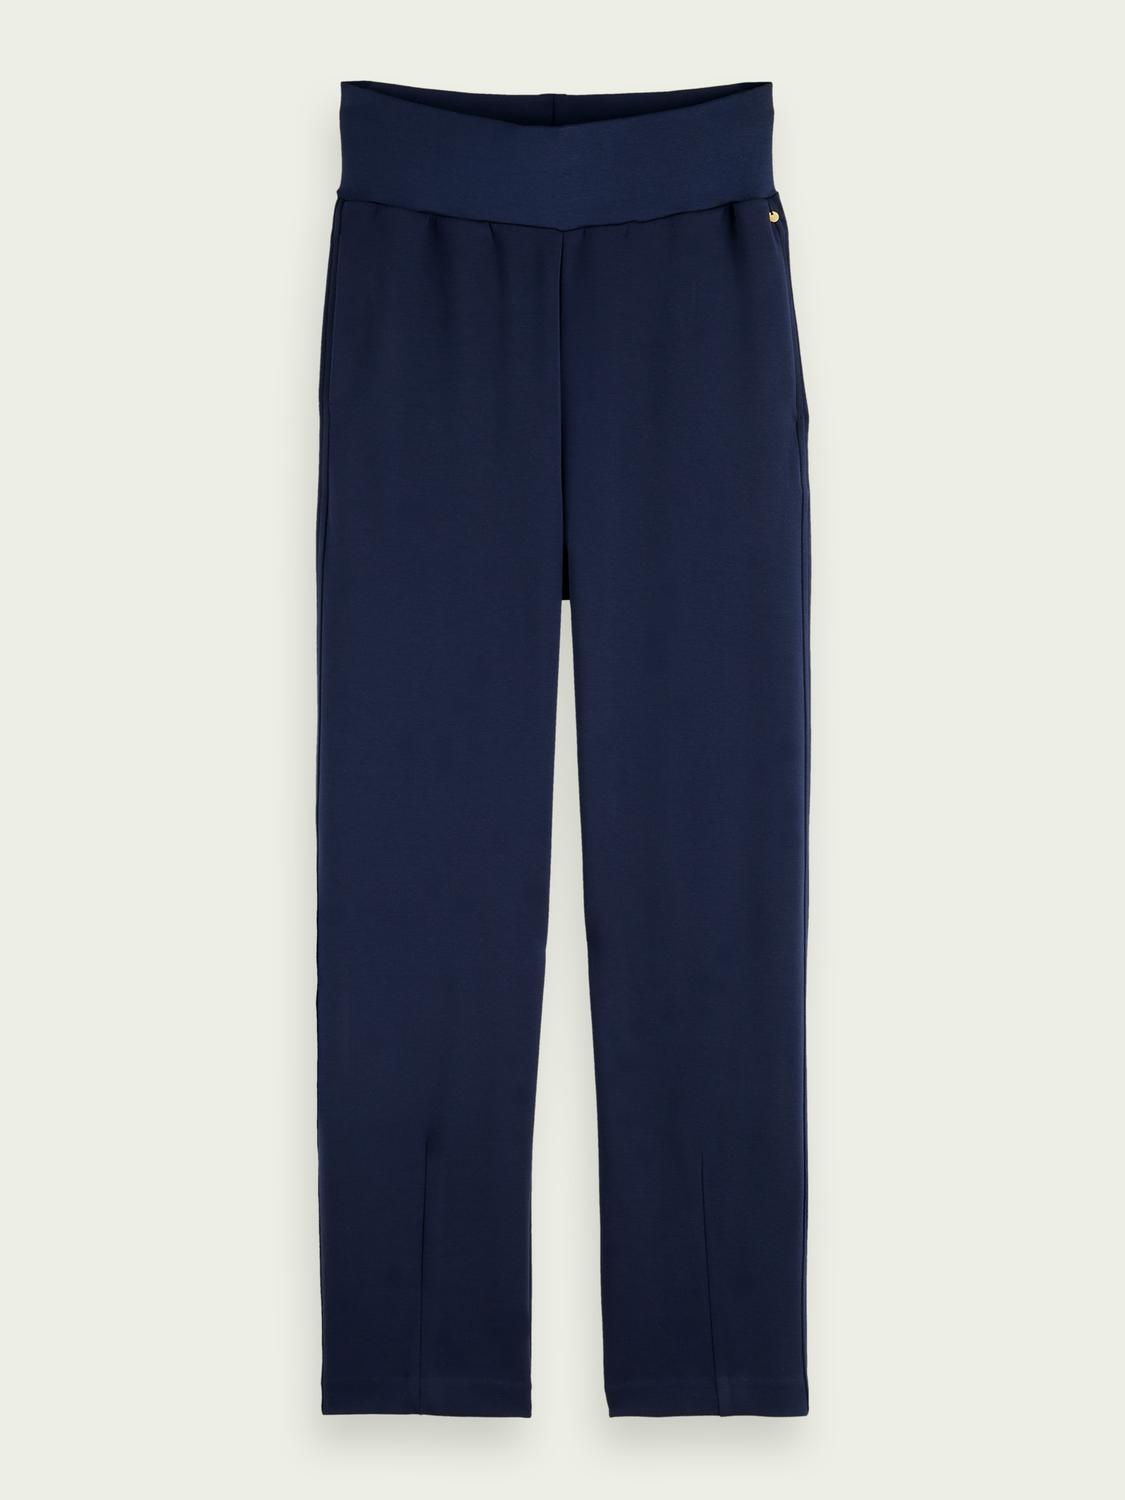 Tapered high-rise sweatpants